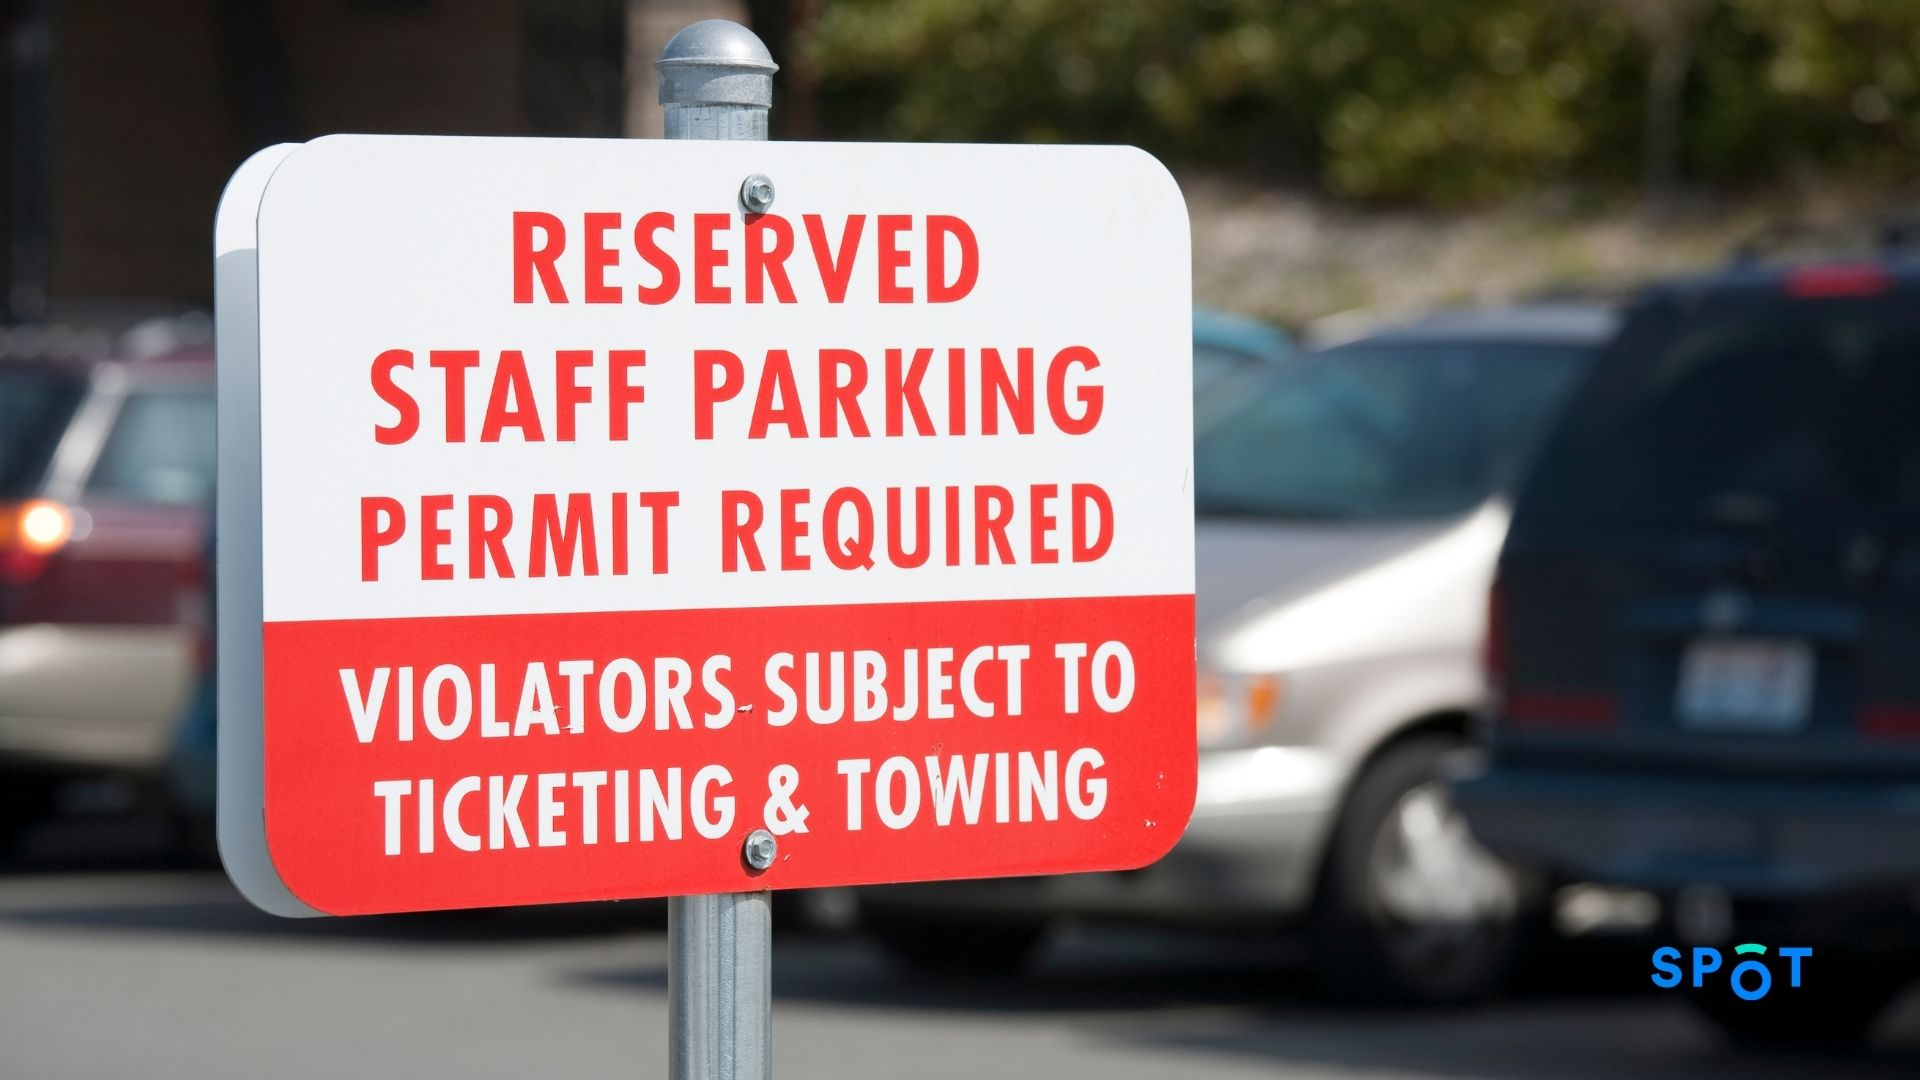 A reserved staff parking permit sign, parking permits in universities continue to be a headache